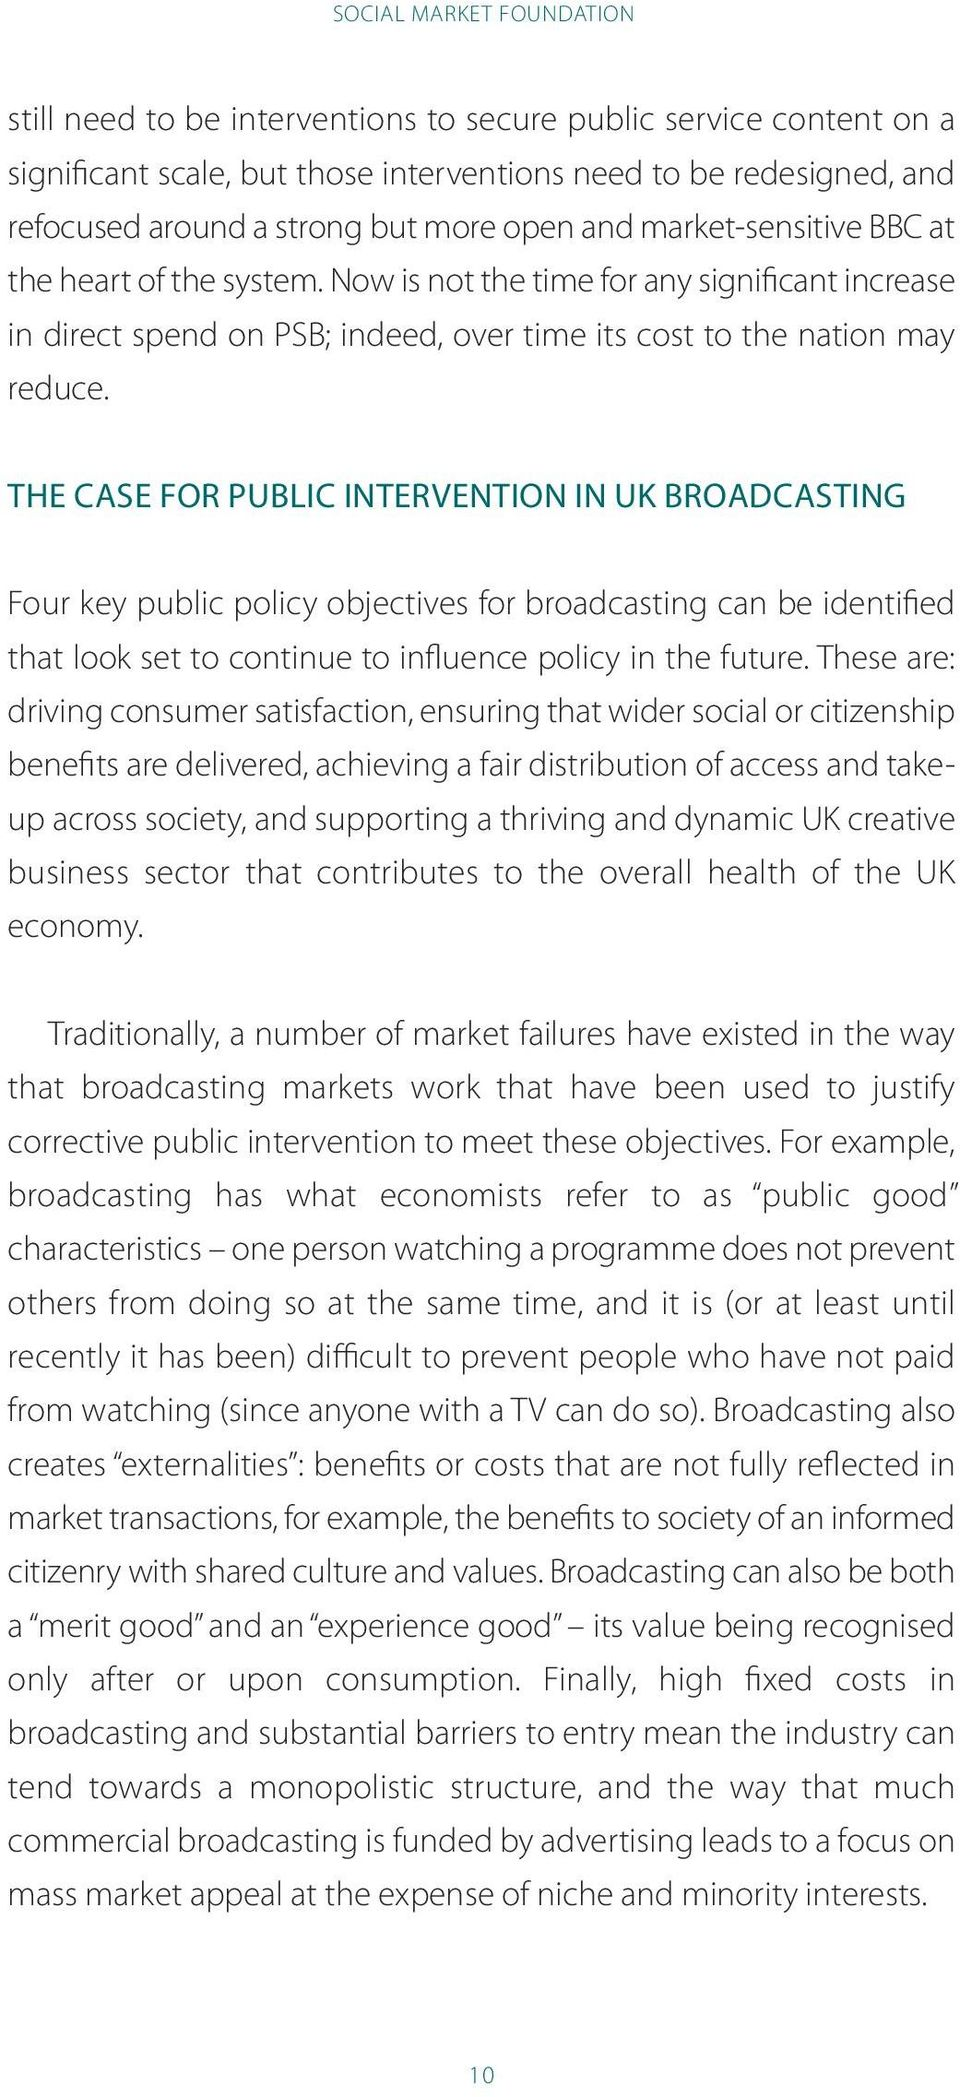 the CasE FOR PuBliC intervention in uk BROaDCastinG Four key public policy objectives for broadcasting can be identified that look set to continue to influence policy in the future.